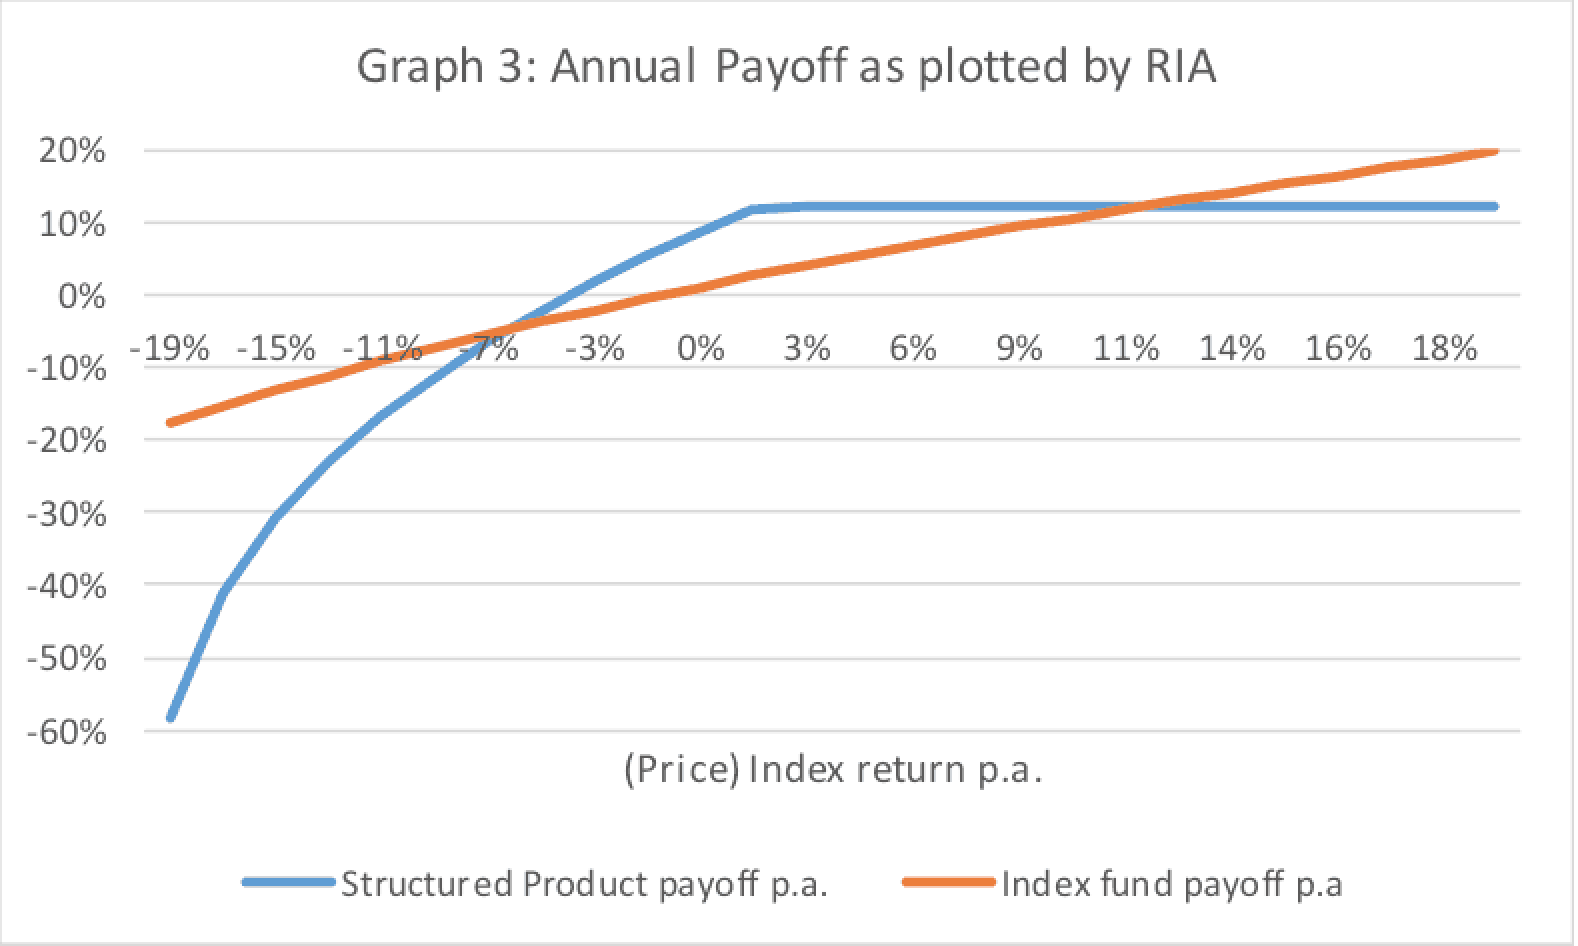 Cumulative payoff scenario 3 discussed by RIA with client